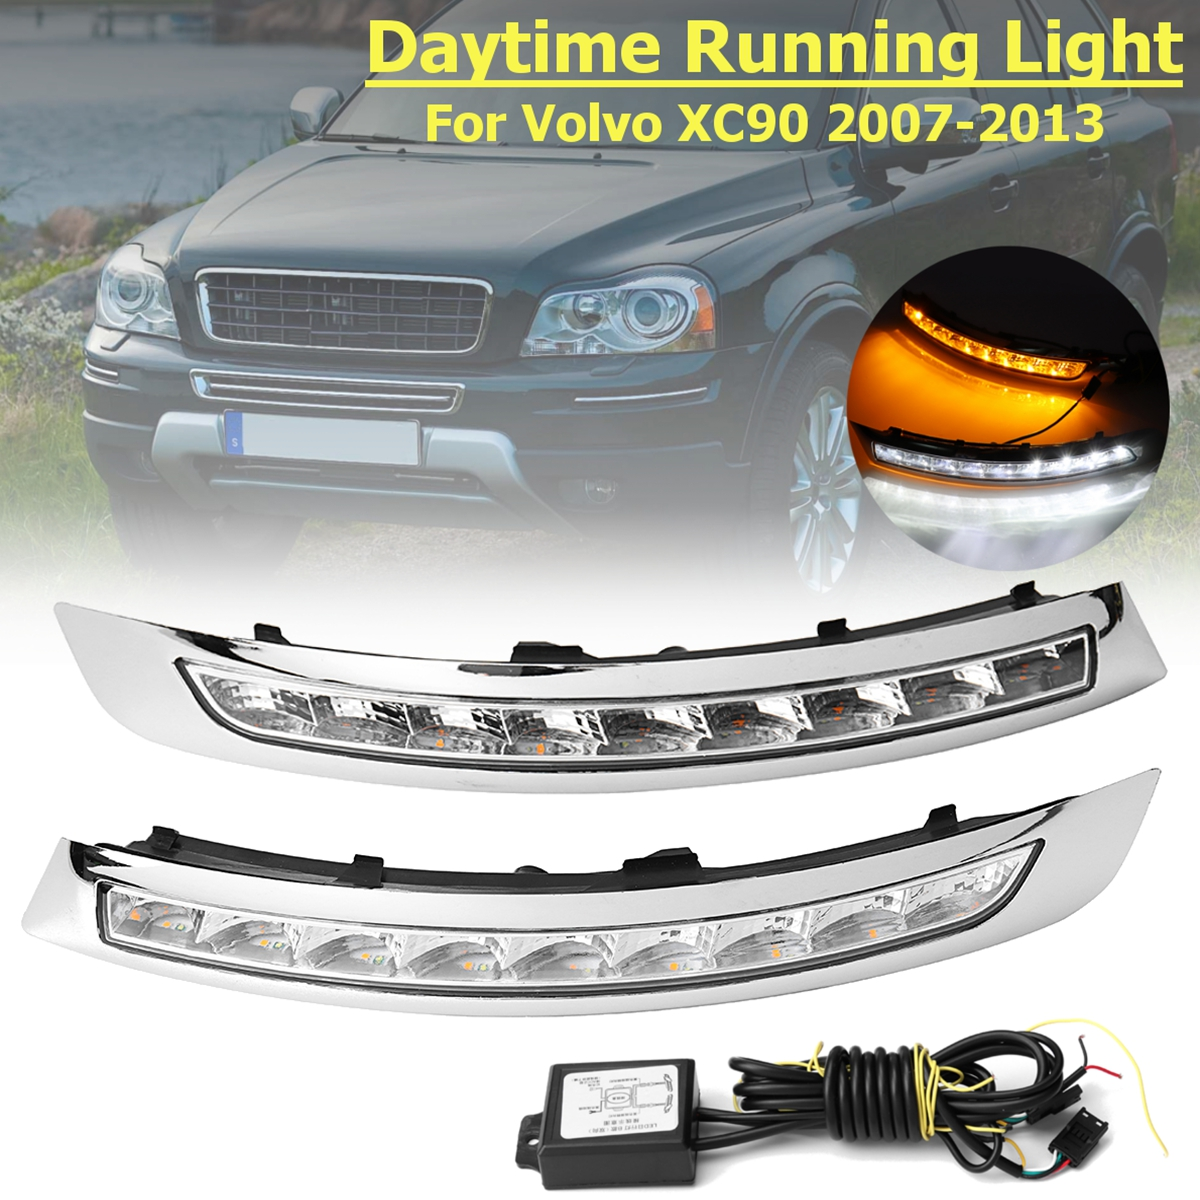 1 Pair Daytime Running Lights LED DRL Lamp Turning Signal fog lamp For Volvo XC90 2007 2008 2009 2010 2011 2012 2013 цены